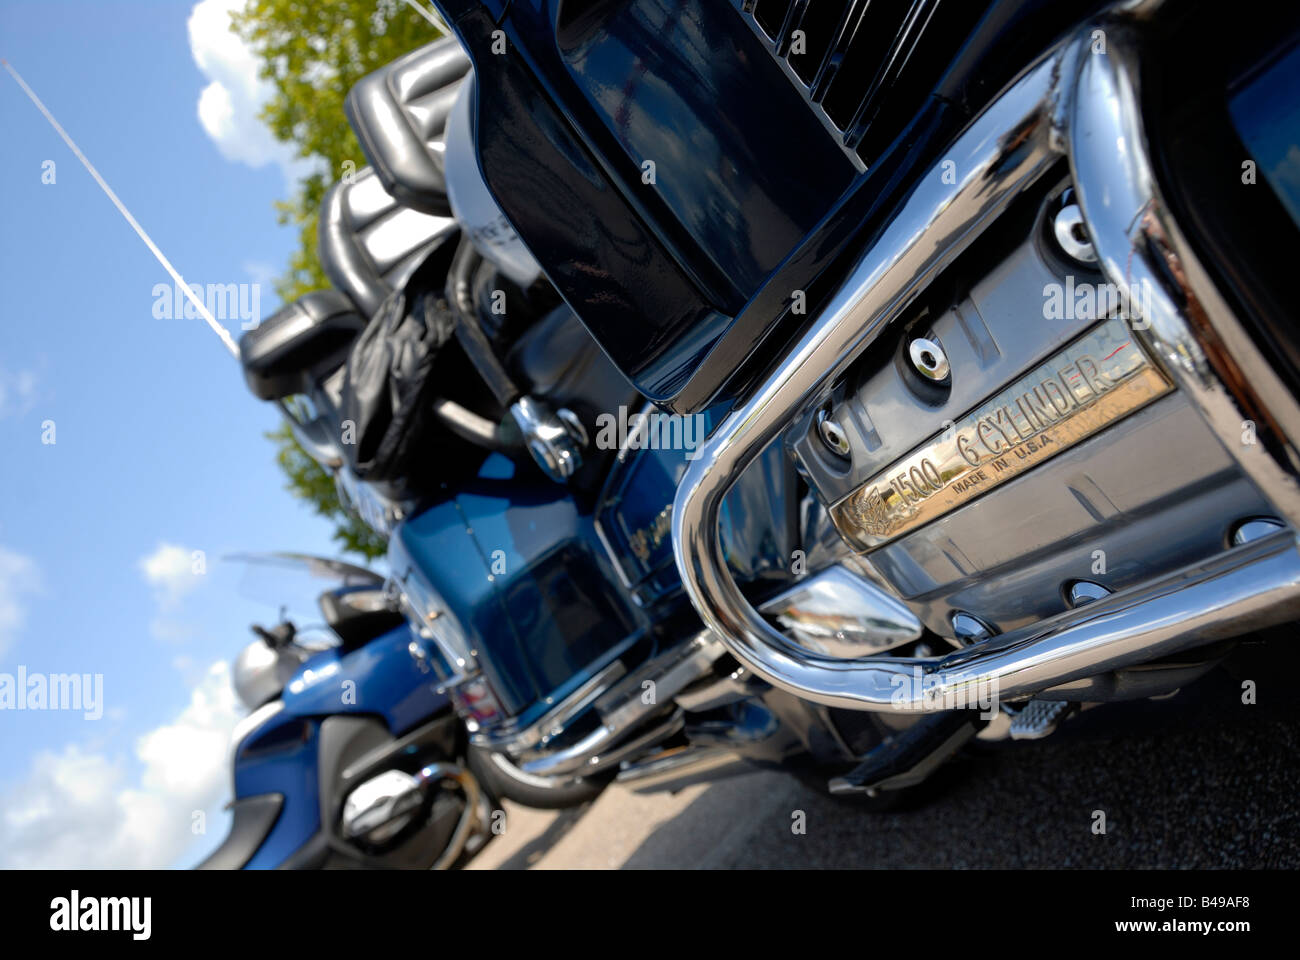 Stock photo of a Honda Goldwing 1500 - Stock Image